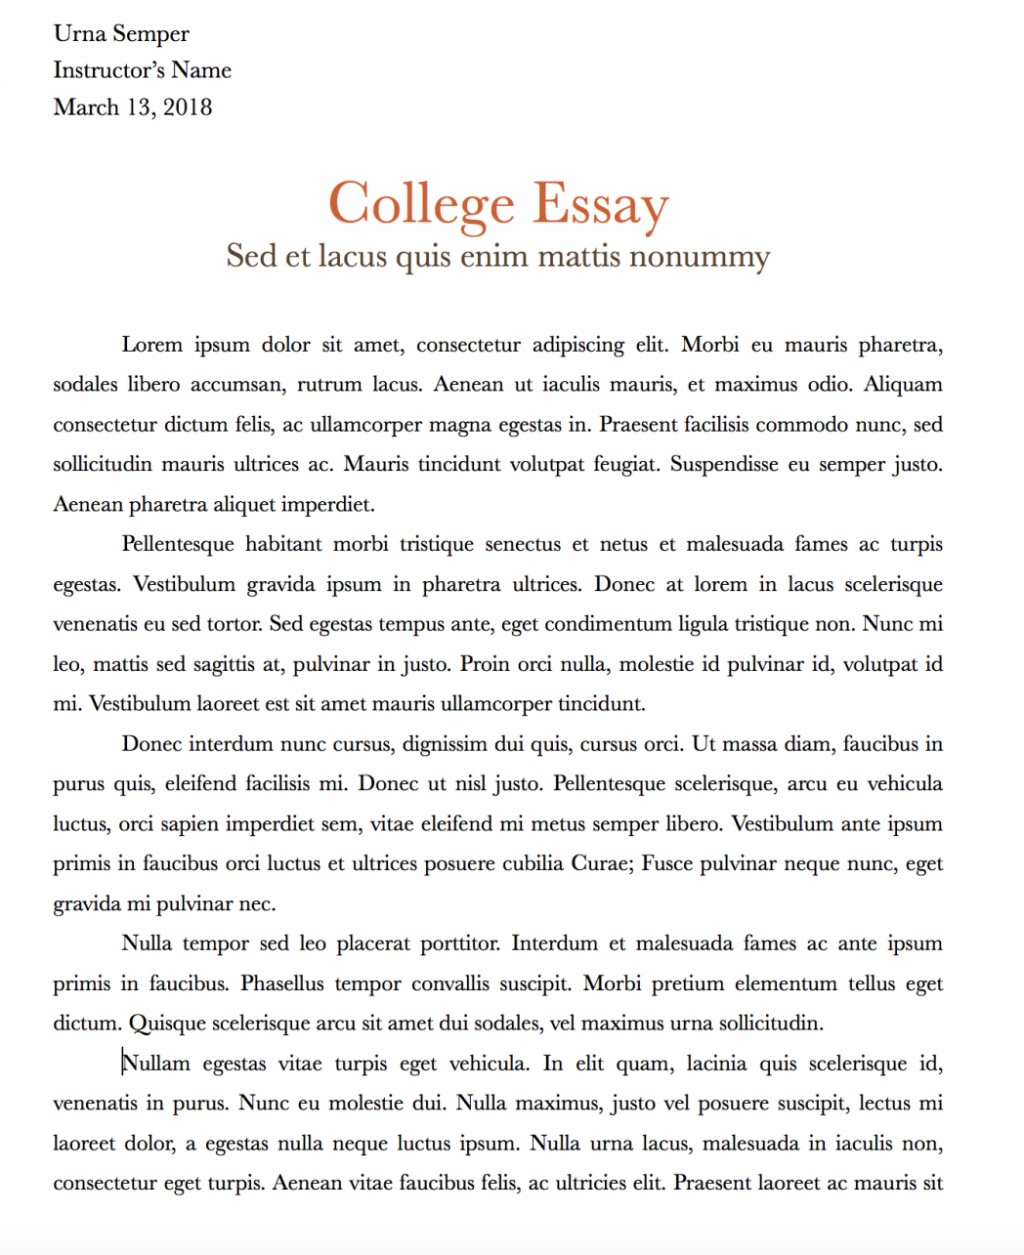 002 Essay Example How To Start Off An Write Interesting And Captivating College Examples Ctwrvkoshcimzkxyhyl8 With Parag Scholarship About Yourself Excellent Introduction A Narrative Good Your Life Large